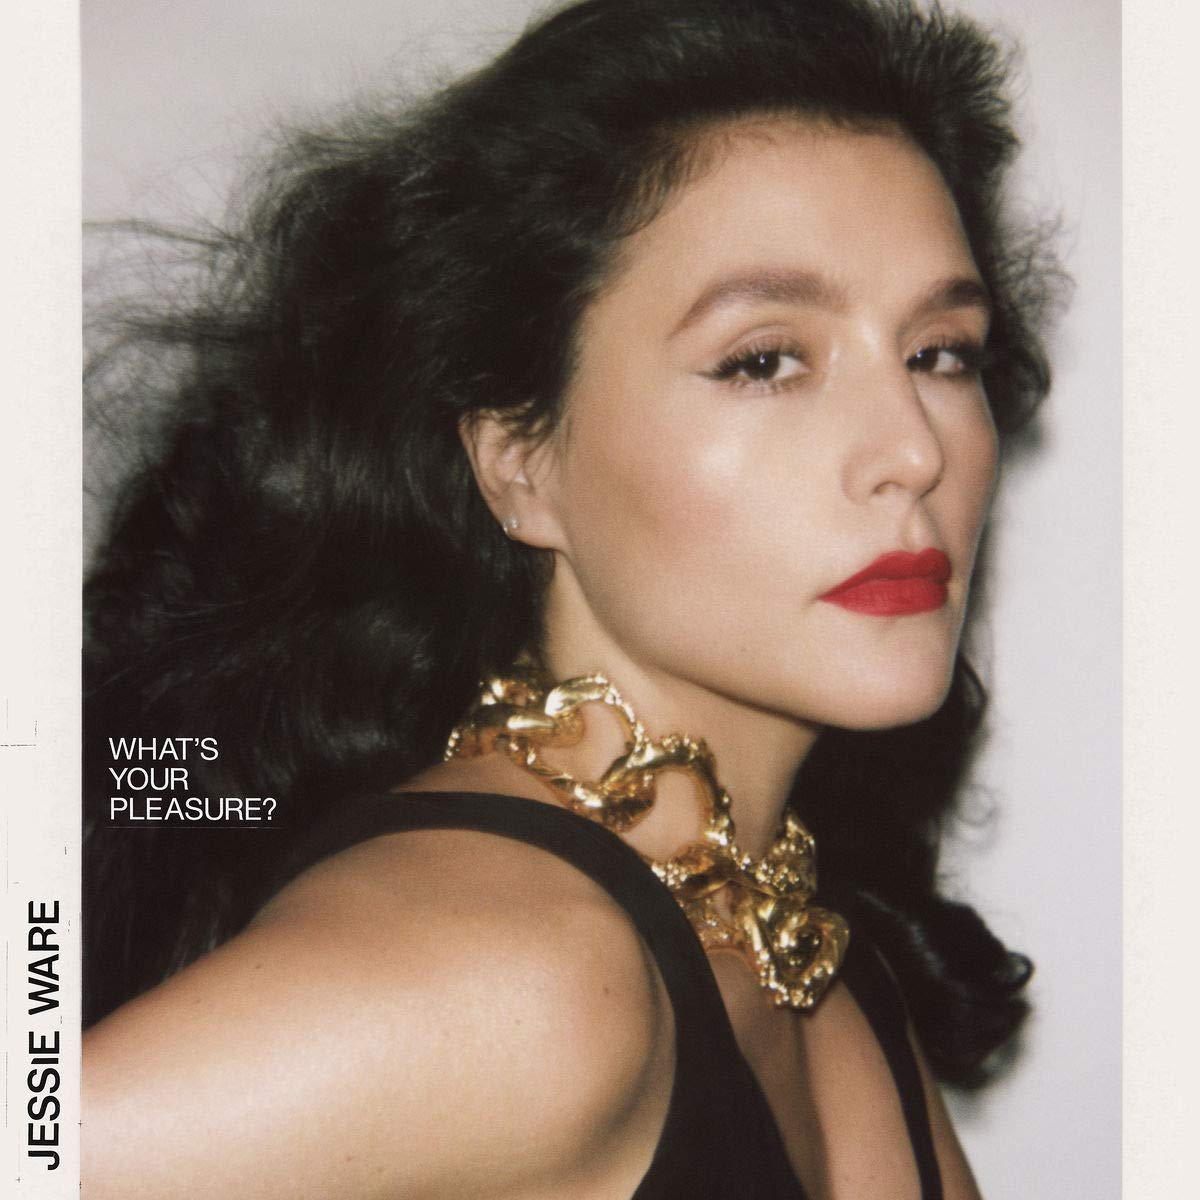 jessie-ware-whats-your-pleasure